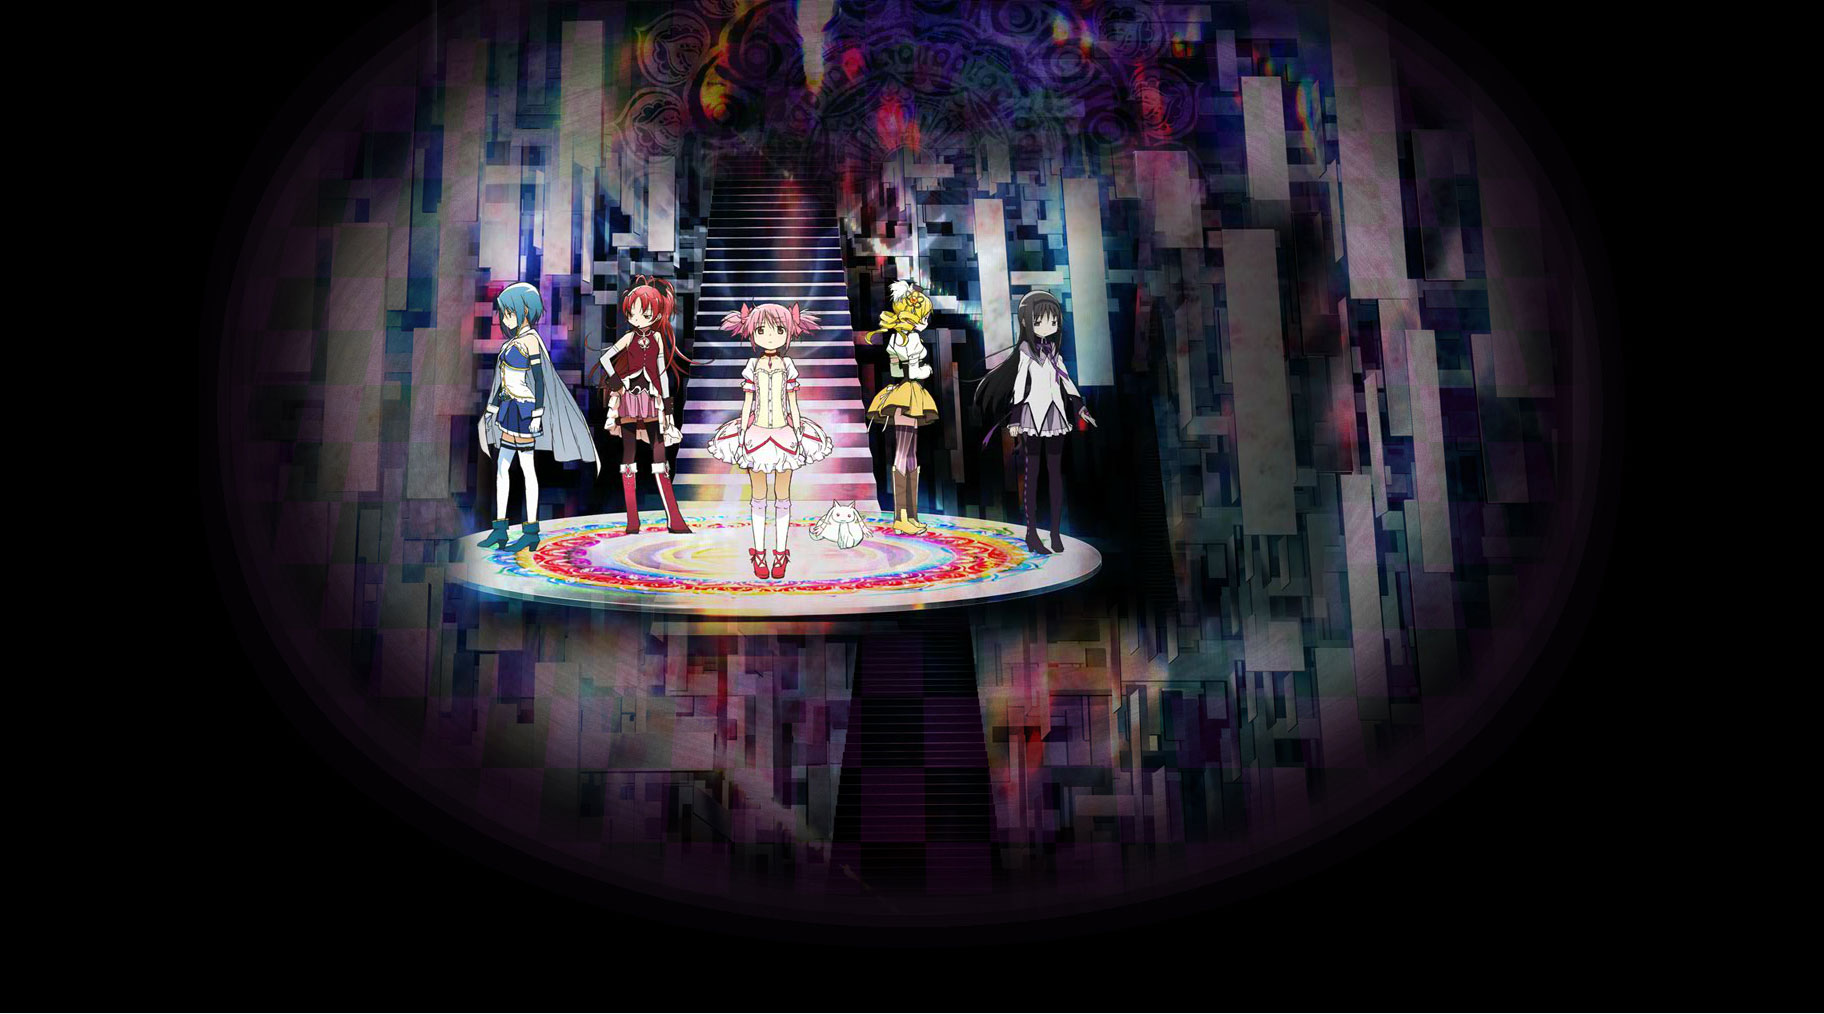 Aniplex streaming Madoka Magica Episode 5 worldwide